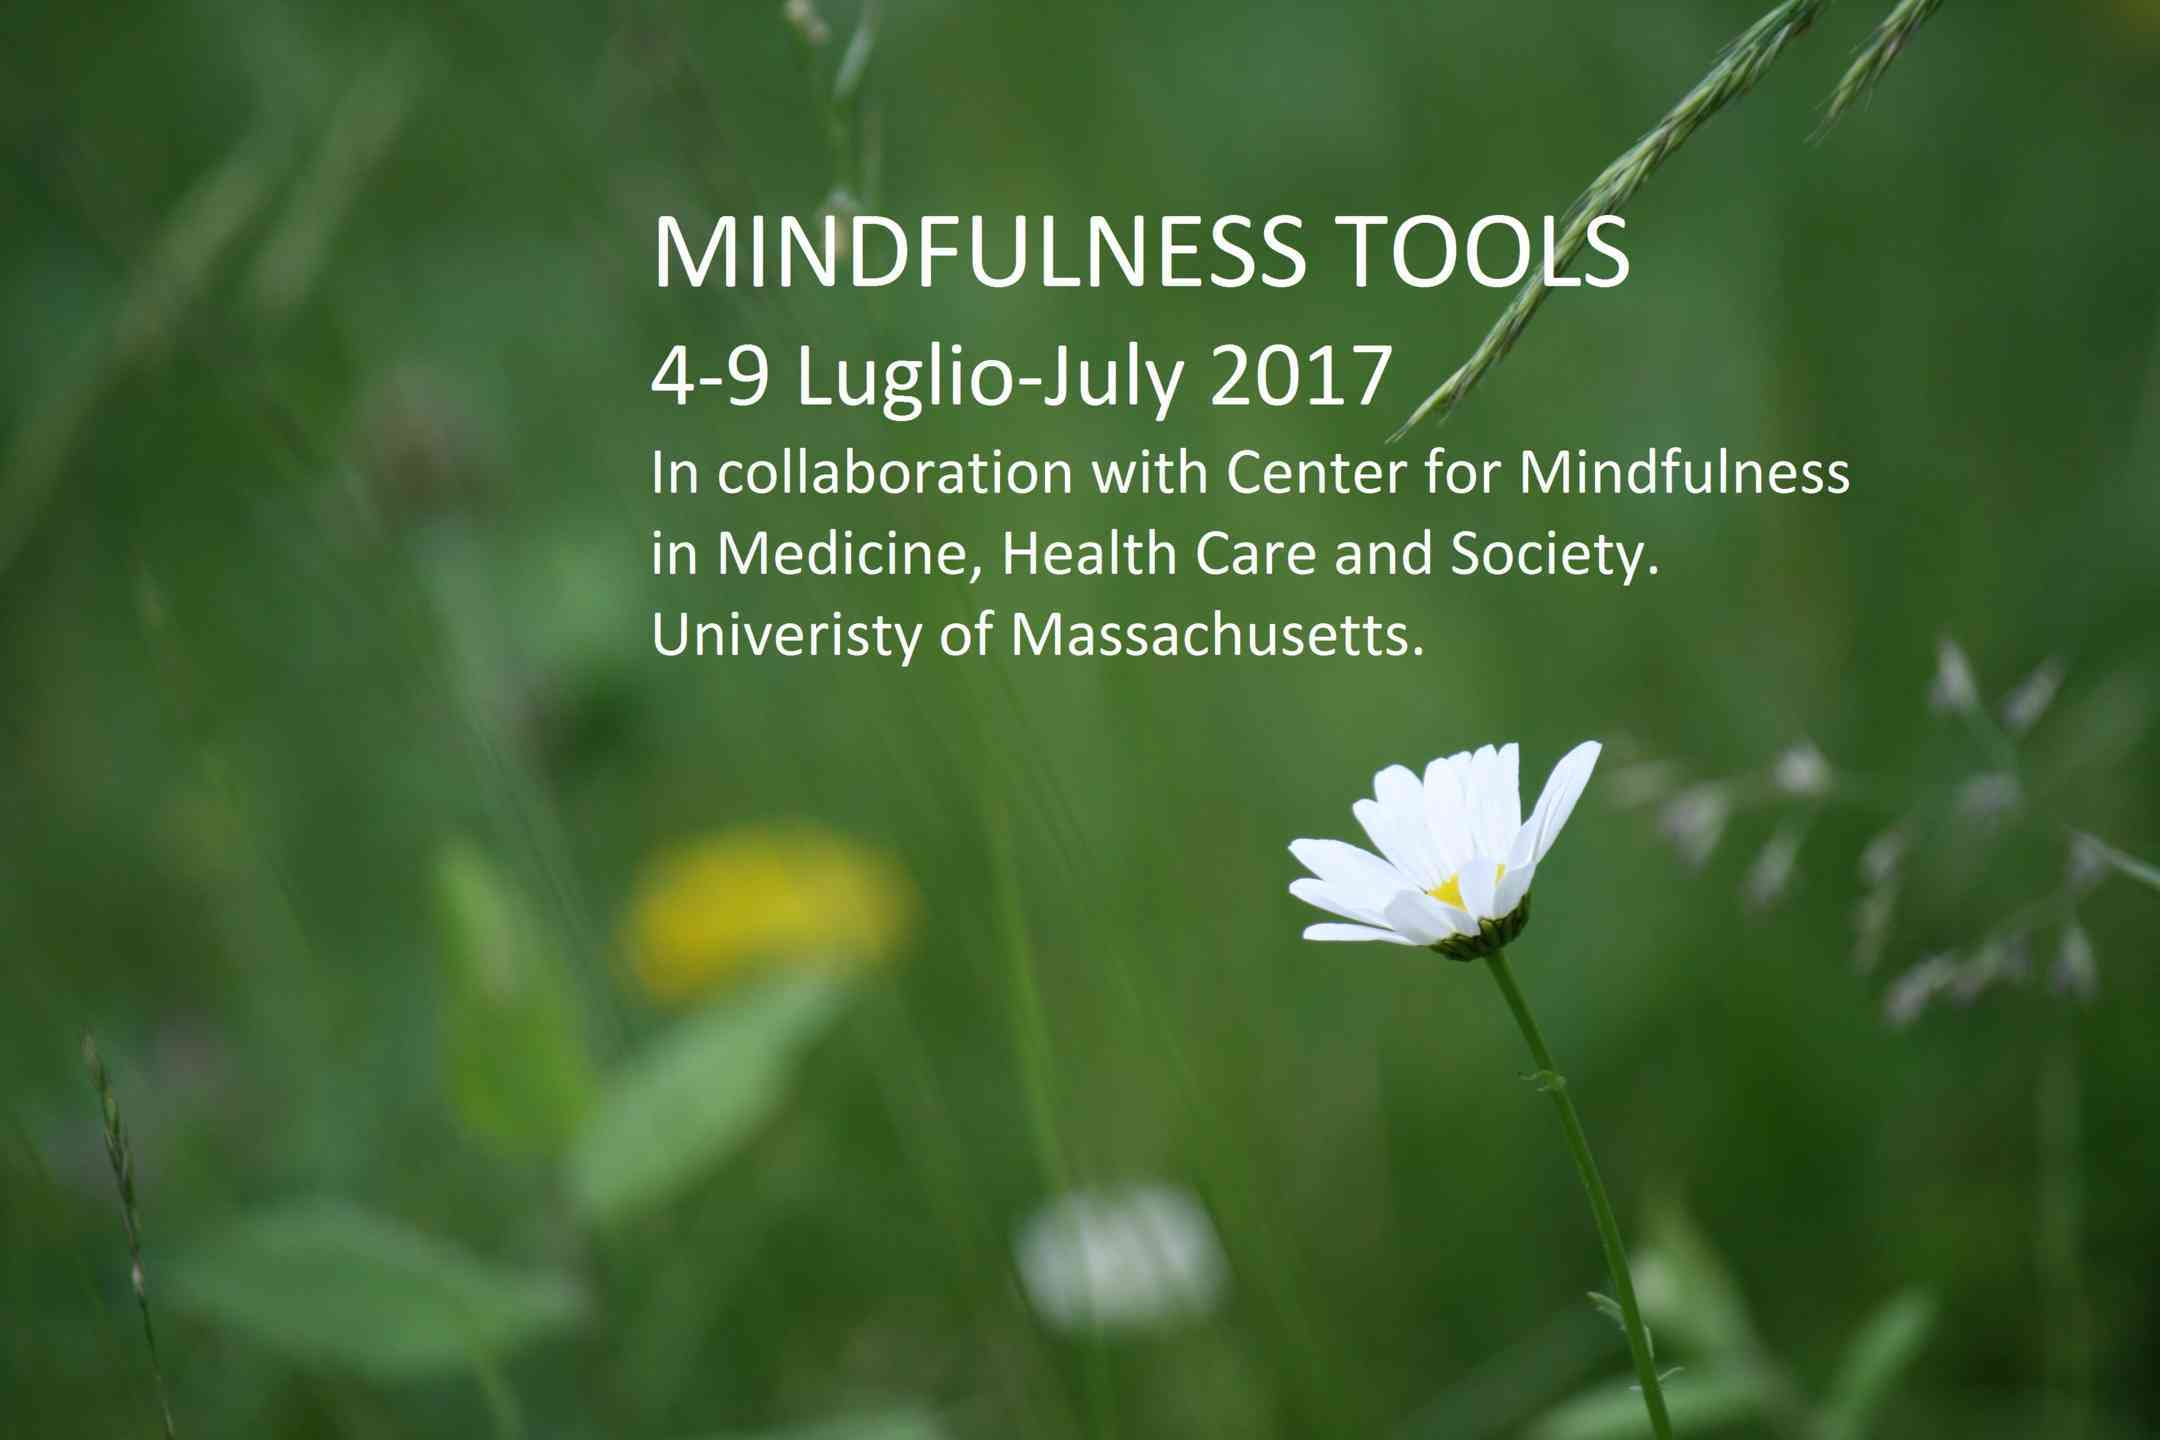 MINDFULNESS_TOOLS_PICTURE_(FILEminimizer).jpg